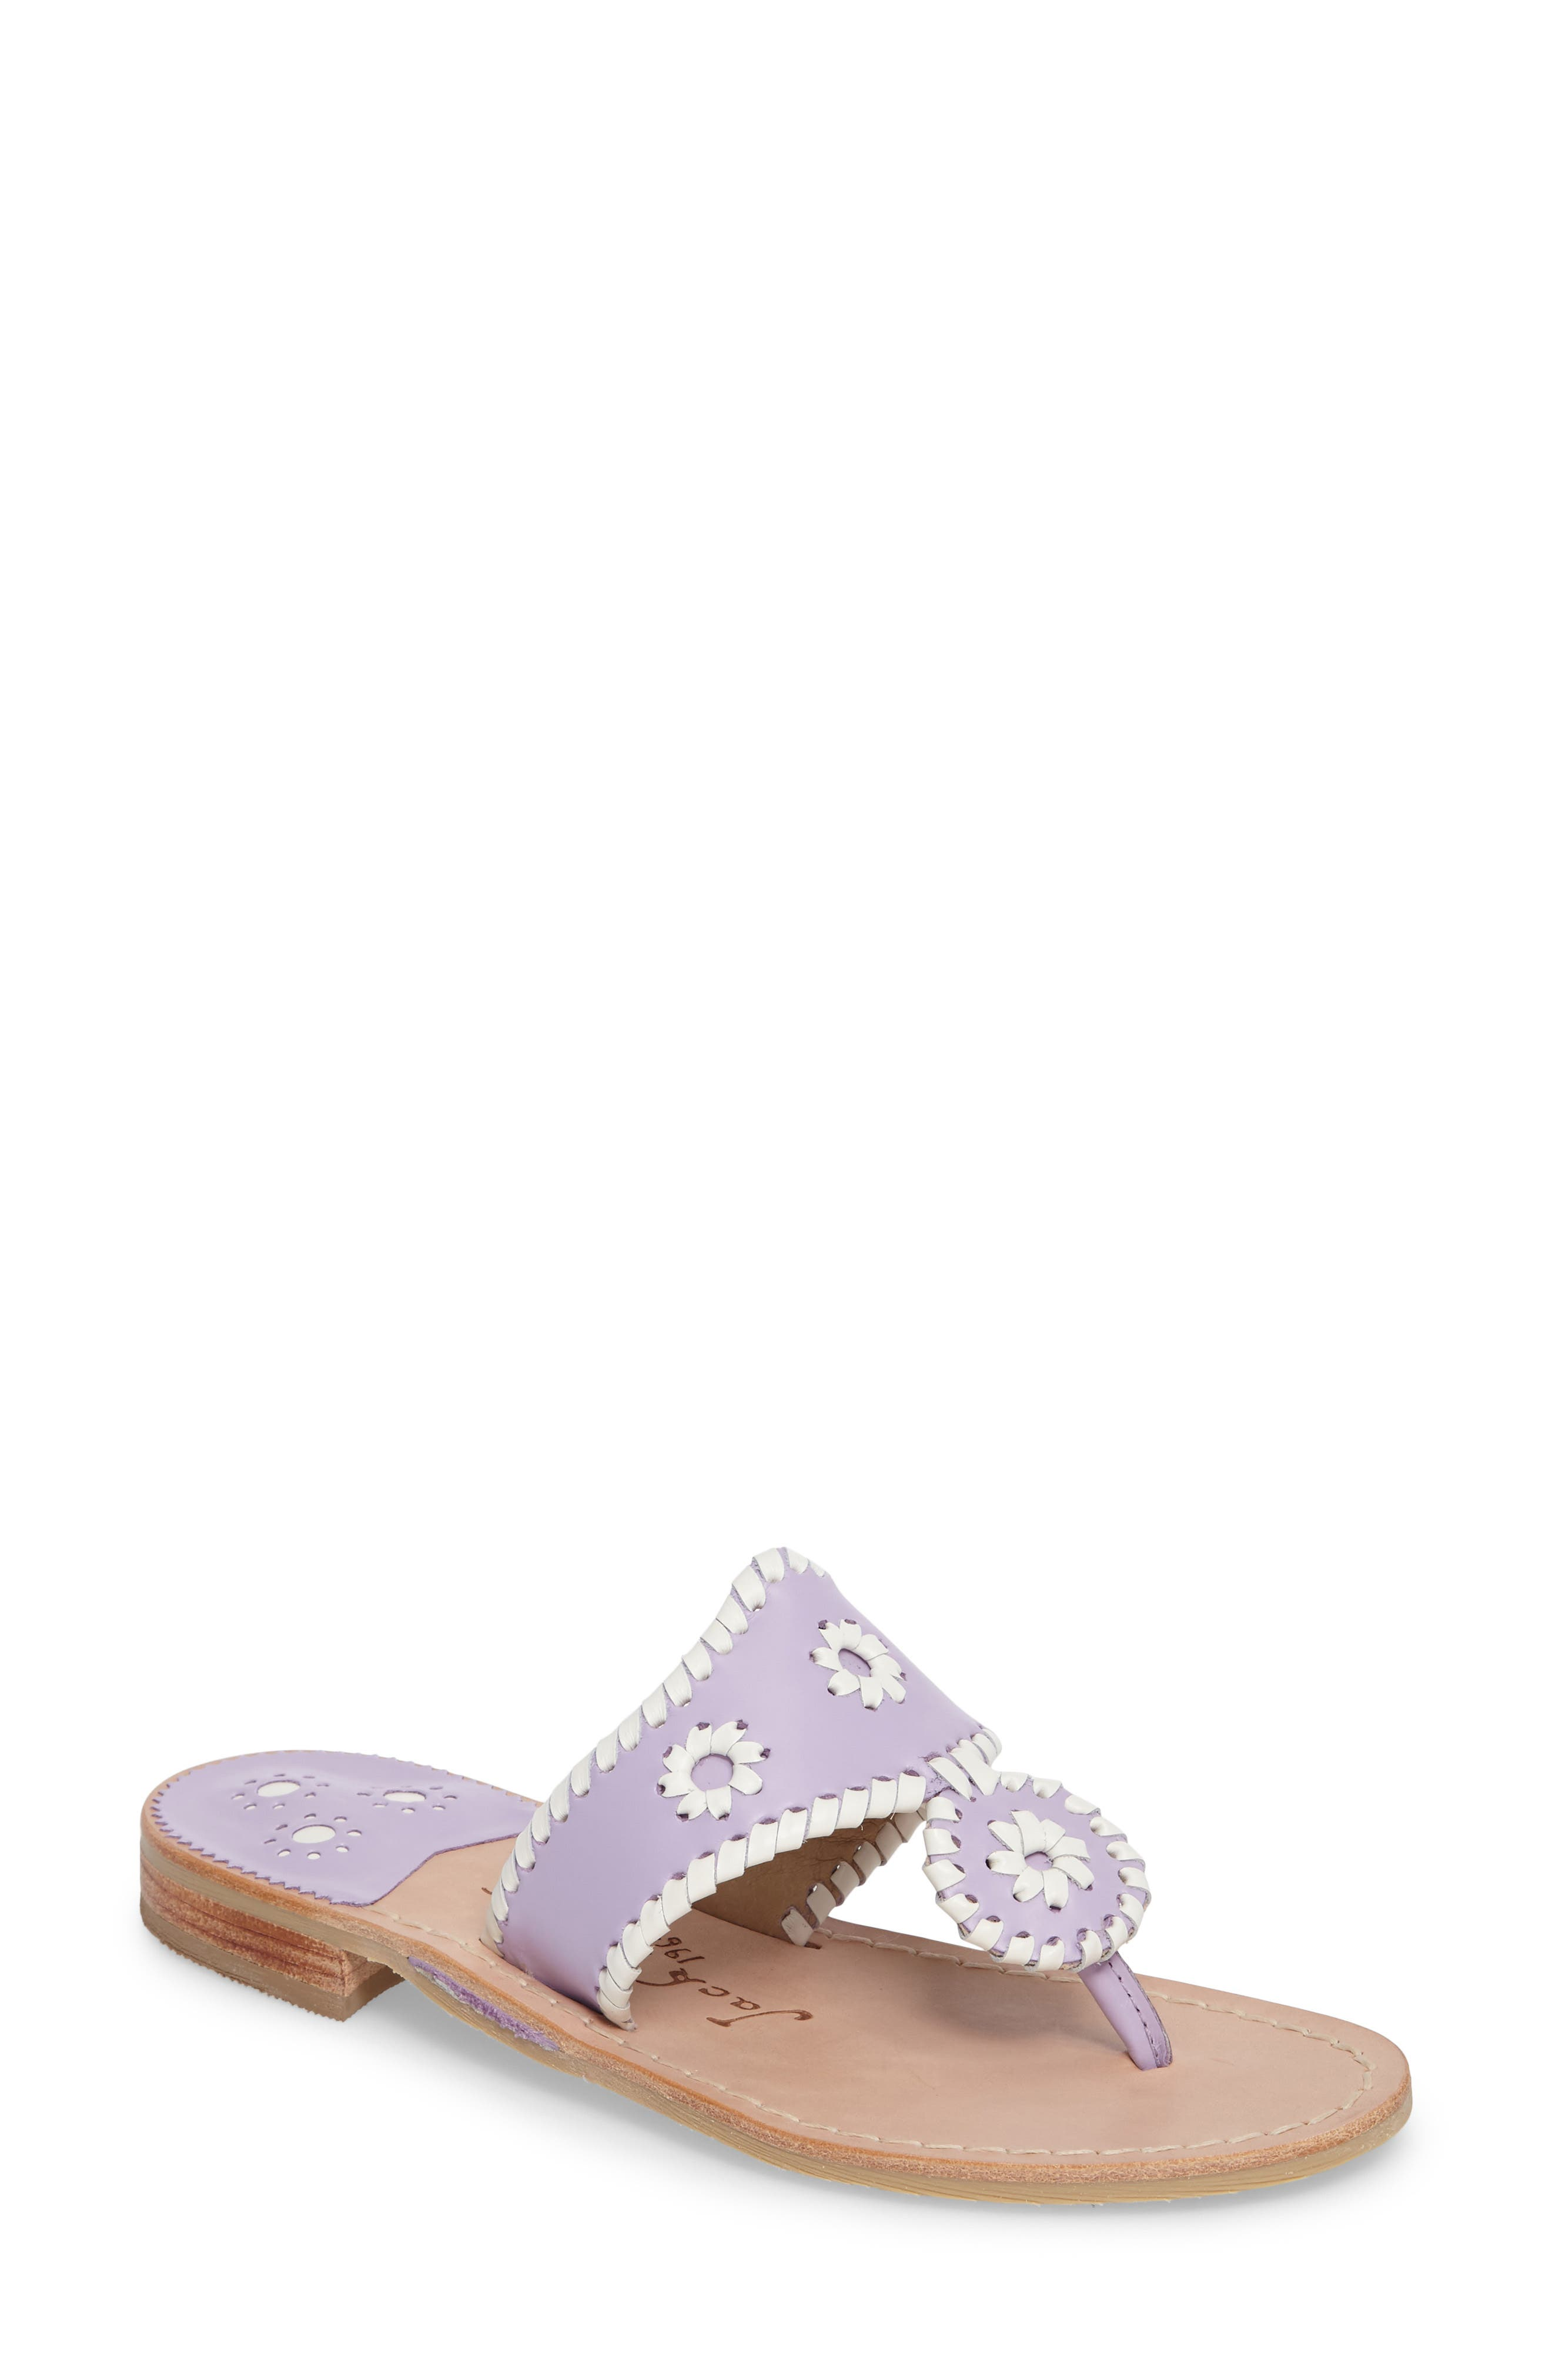 Pretty In Pastel Sandal,                             Main thumbnail 1, color,                             Lilac Leather